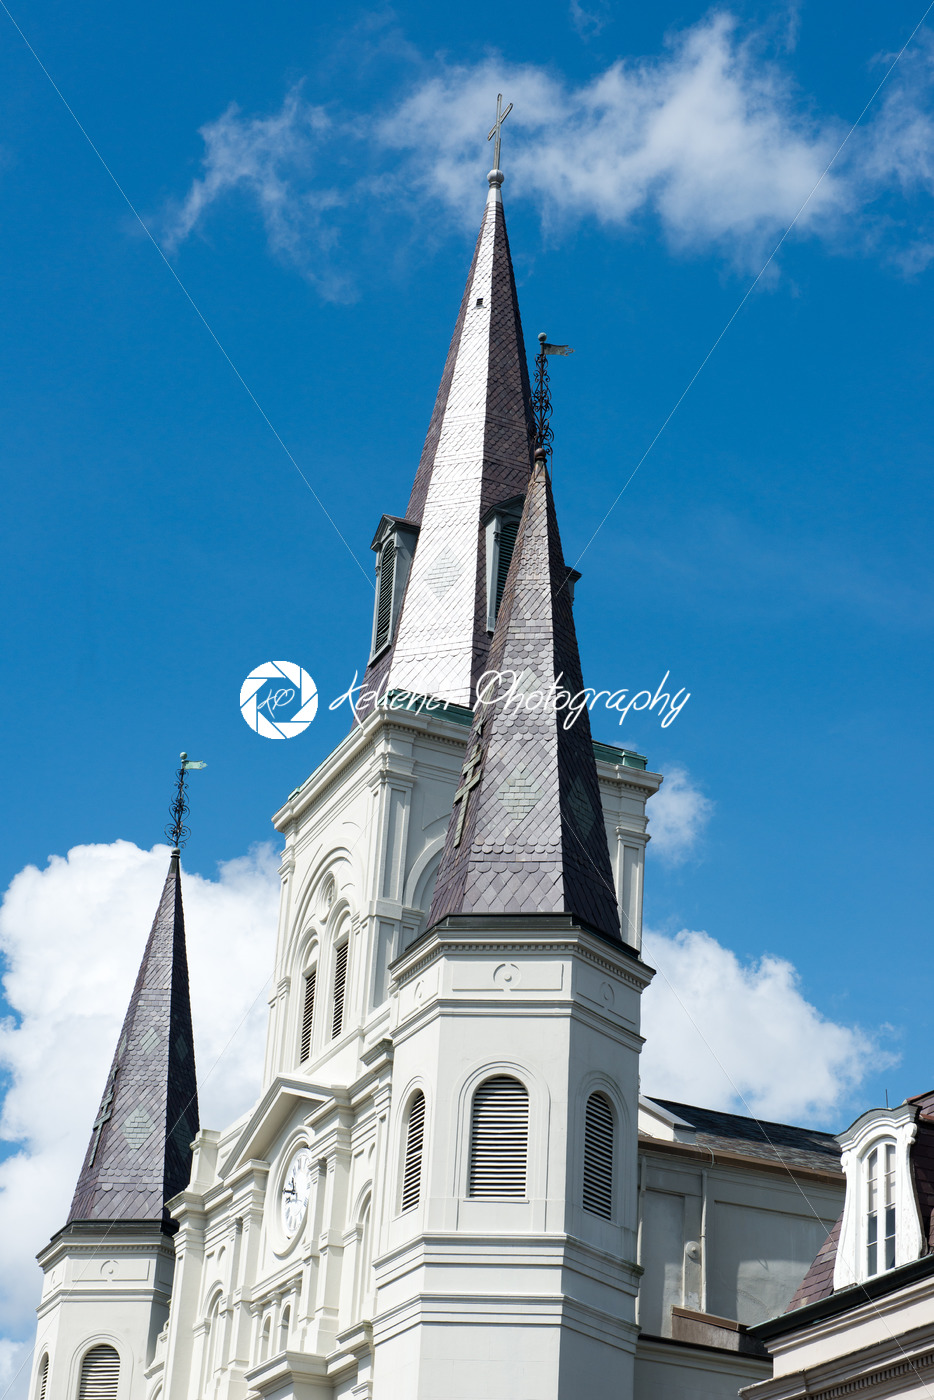 NEW ORLEANS, LA – APRIL 13: Beautiful architecture of Cathedral Basilica of Saint Louis in Jackson Square, New Orleans, LA on April 13, 2014 - Kelleher Photography Store